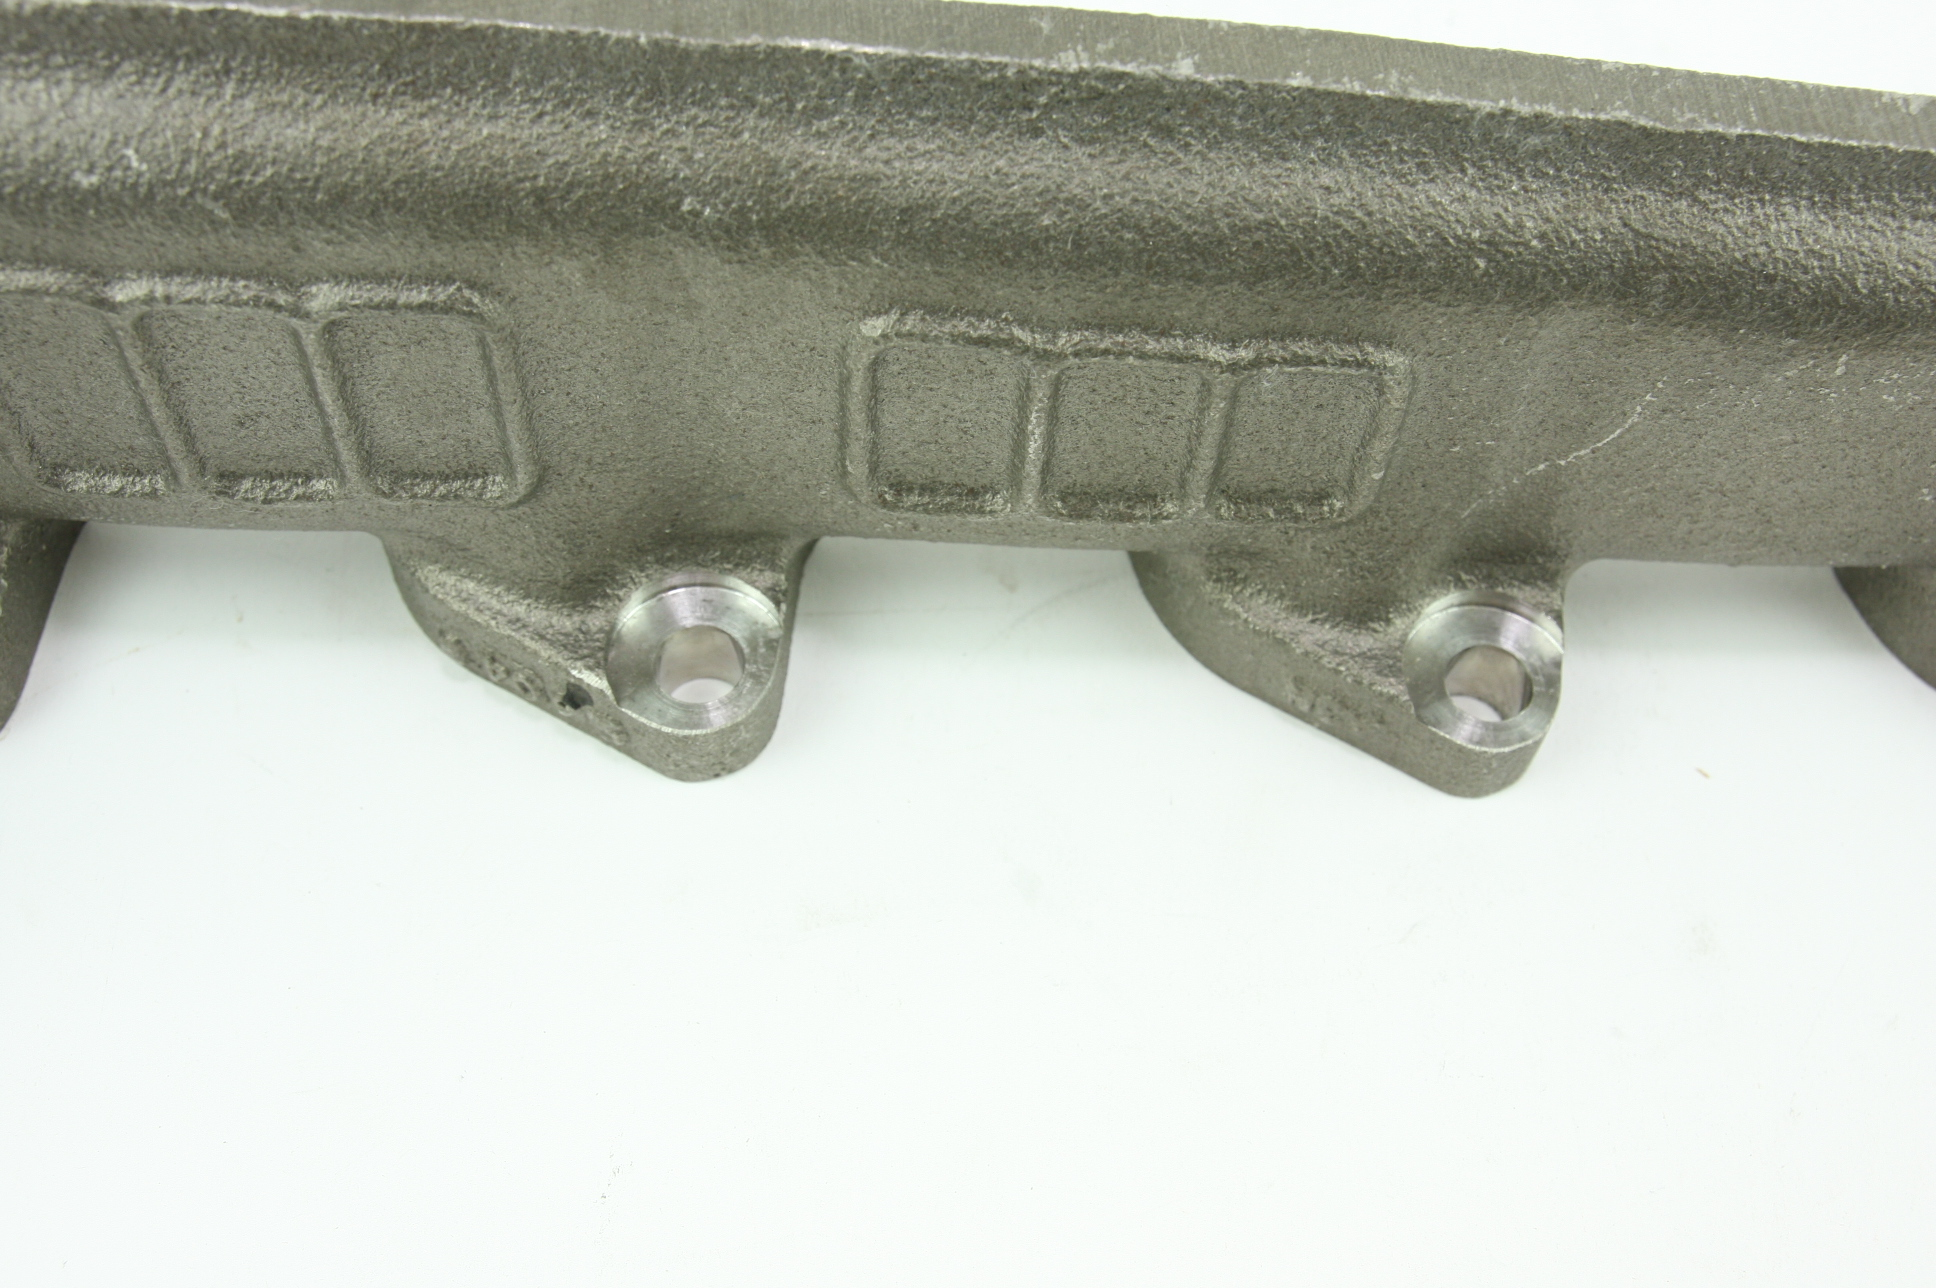 **** New OEM YC2Z9430AA Ford 00-14 Super Duty 6.8L V10 Exhaust Manifold - image 11